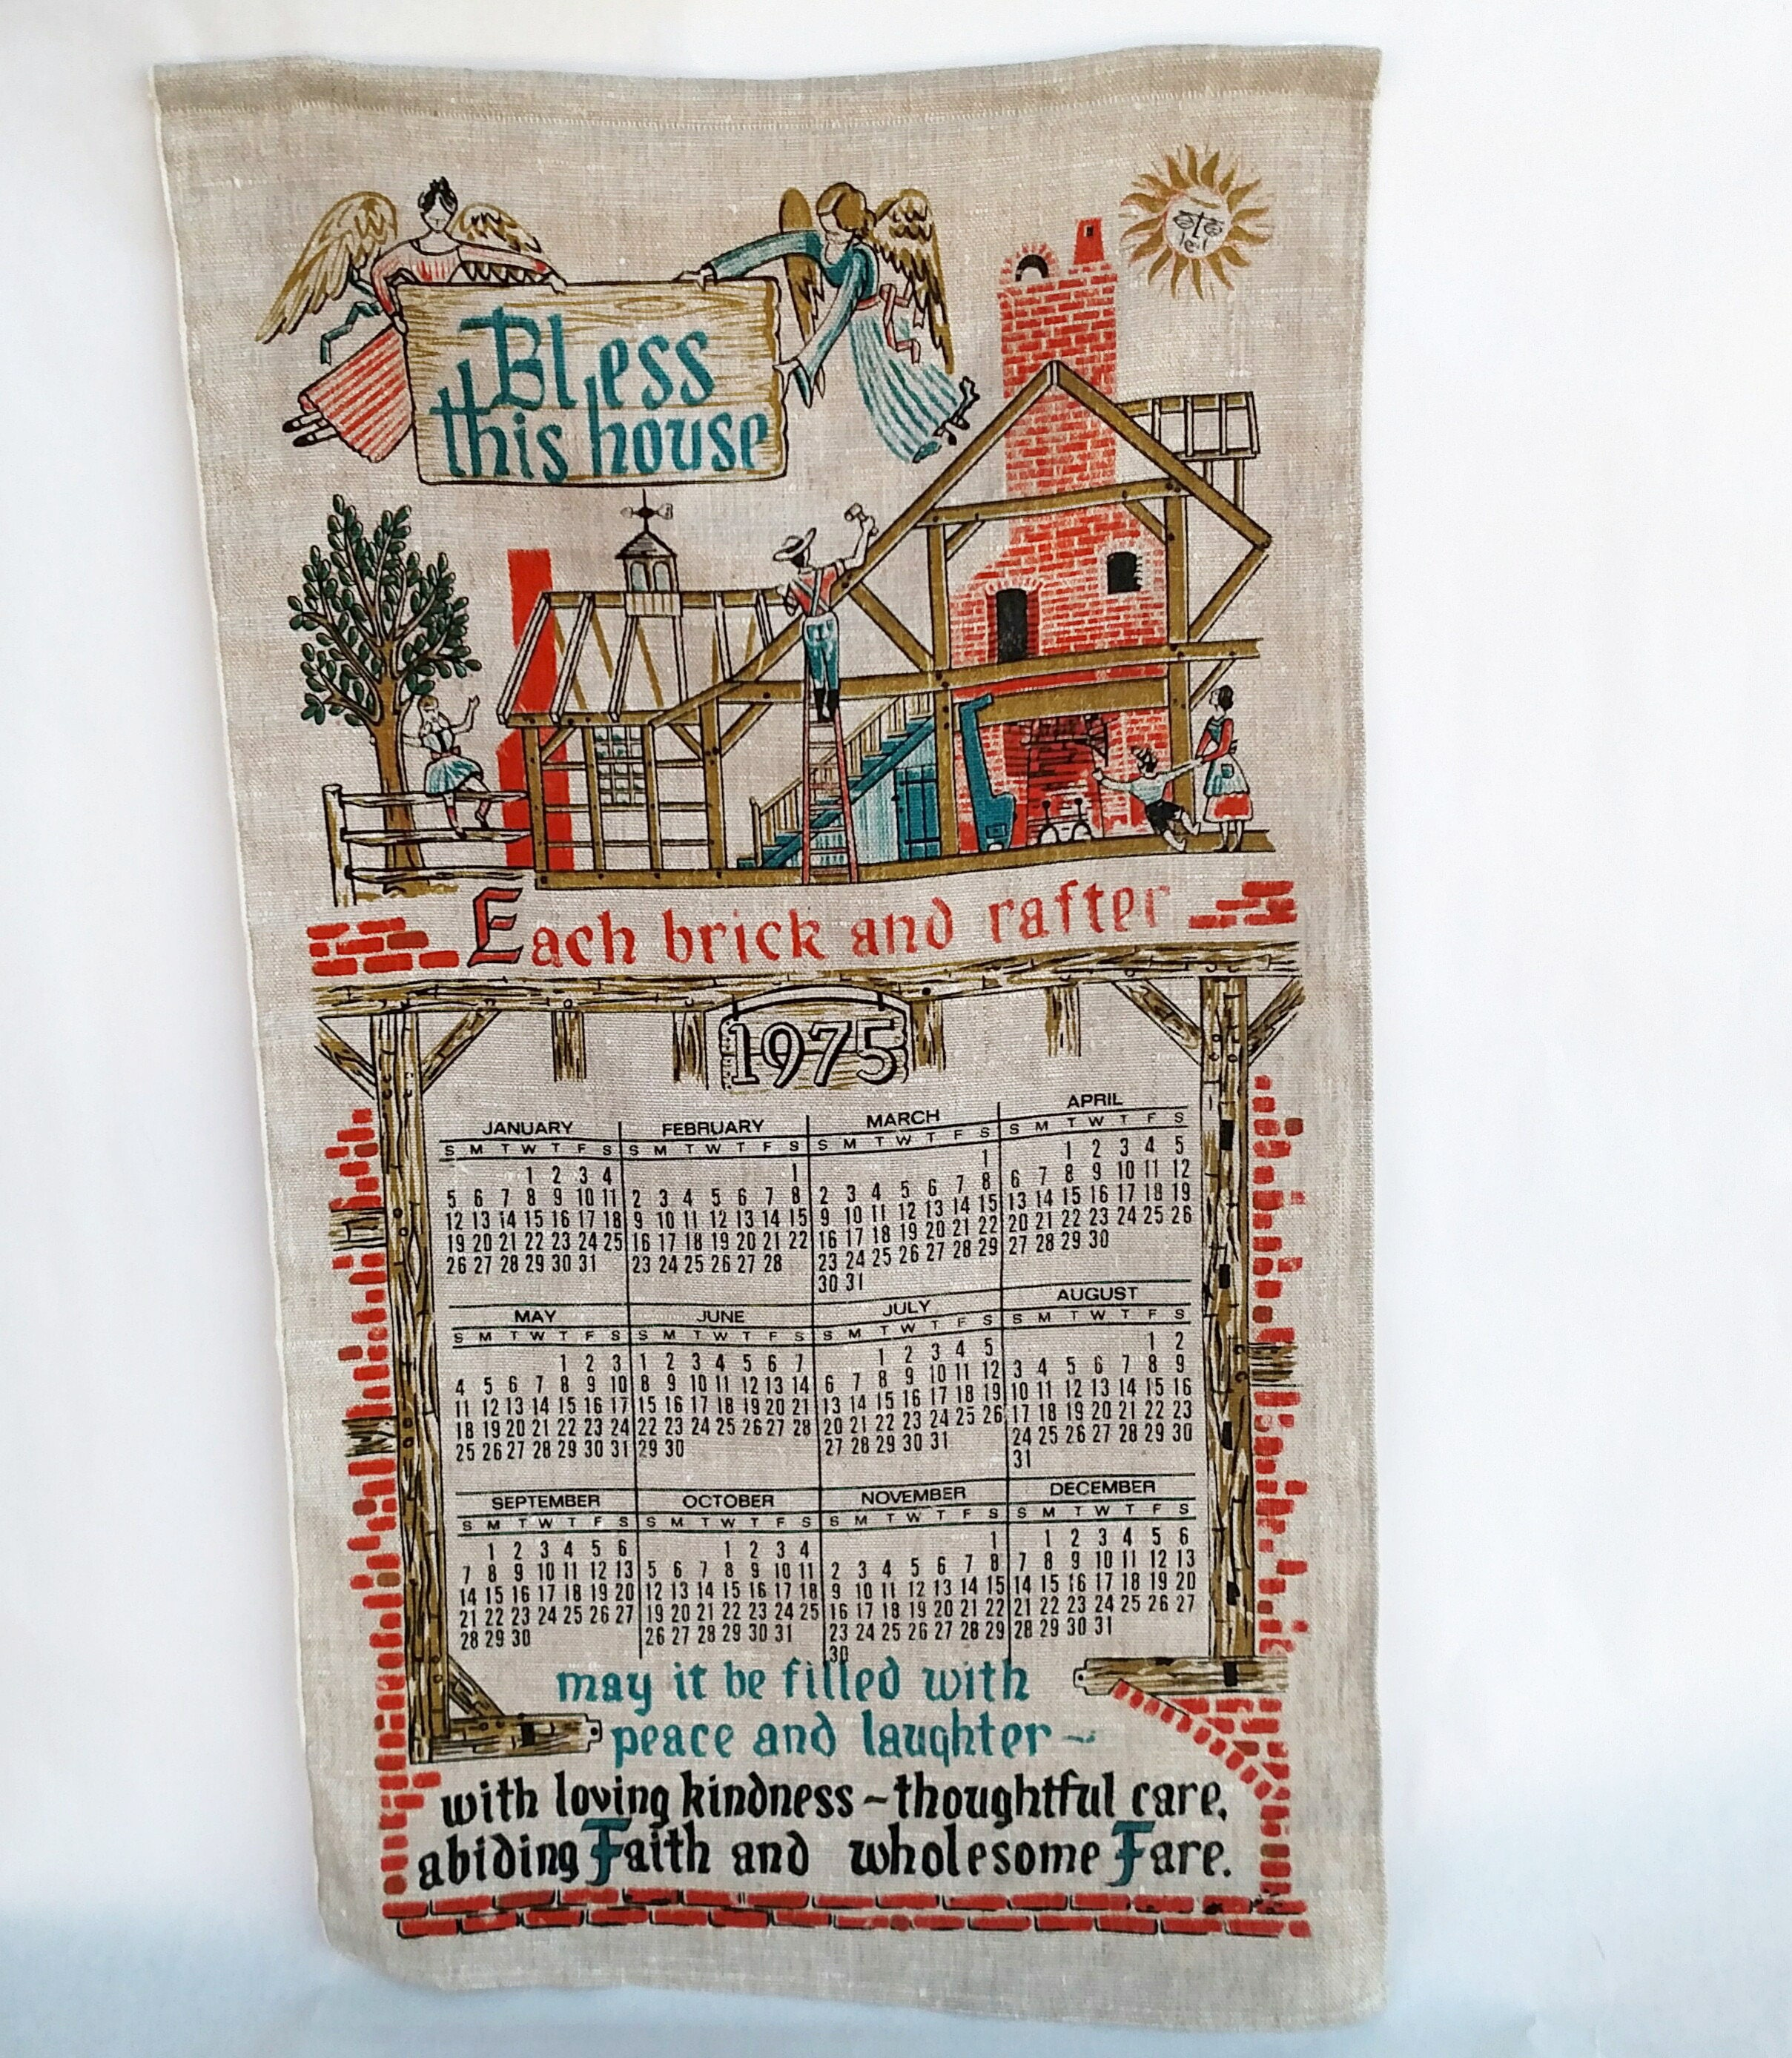 Vintage 1975 Linen Tea Towel Calendar Bless This House Each Brick